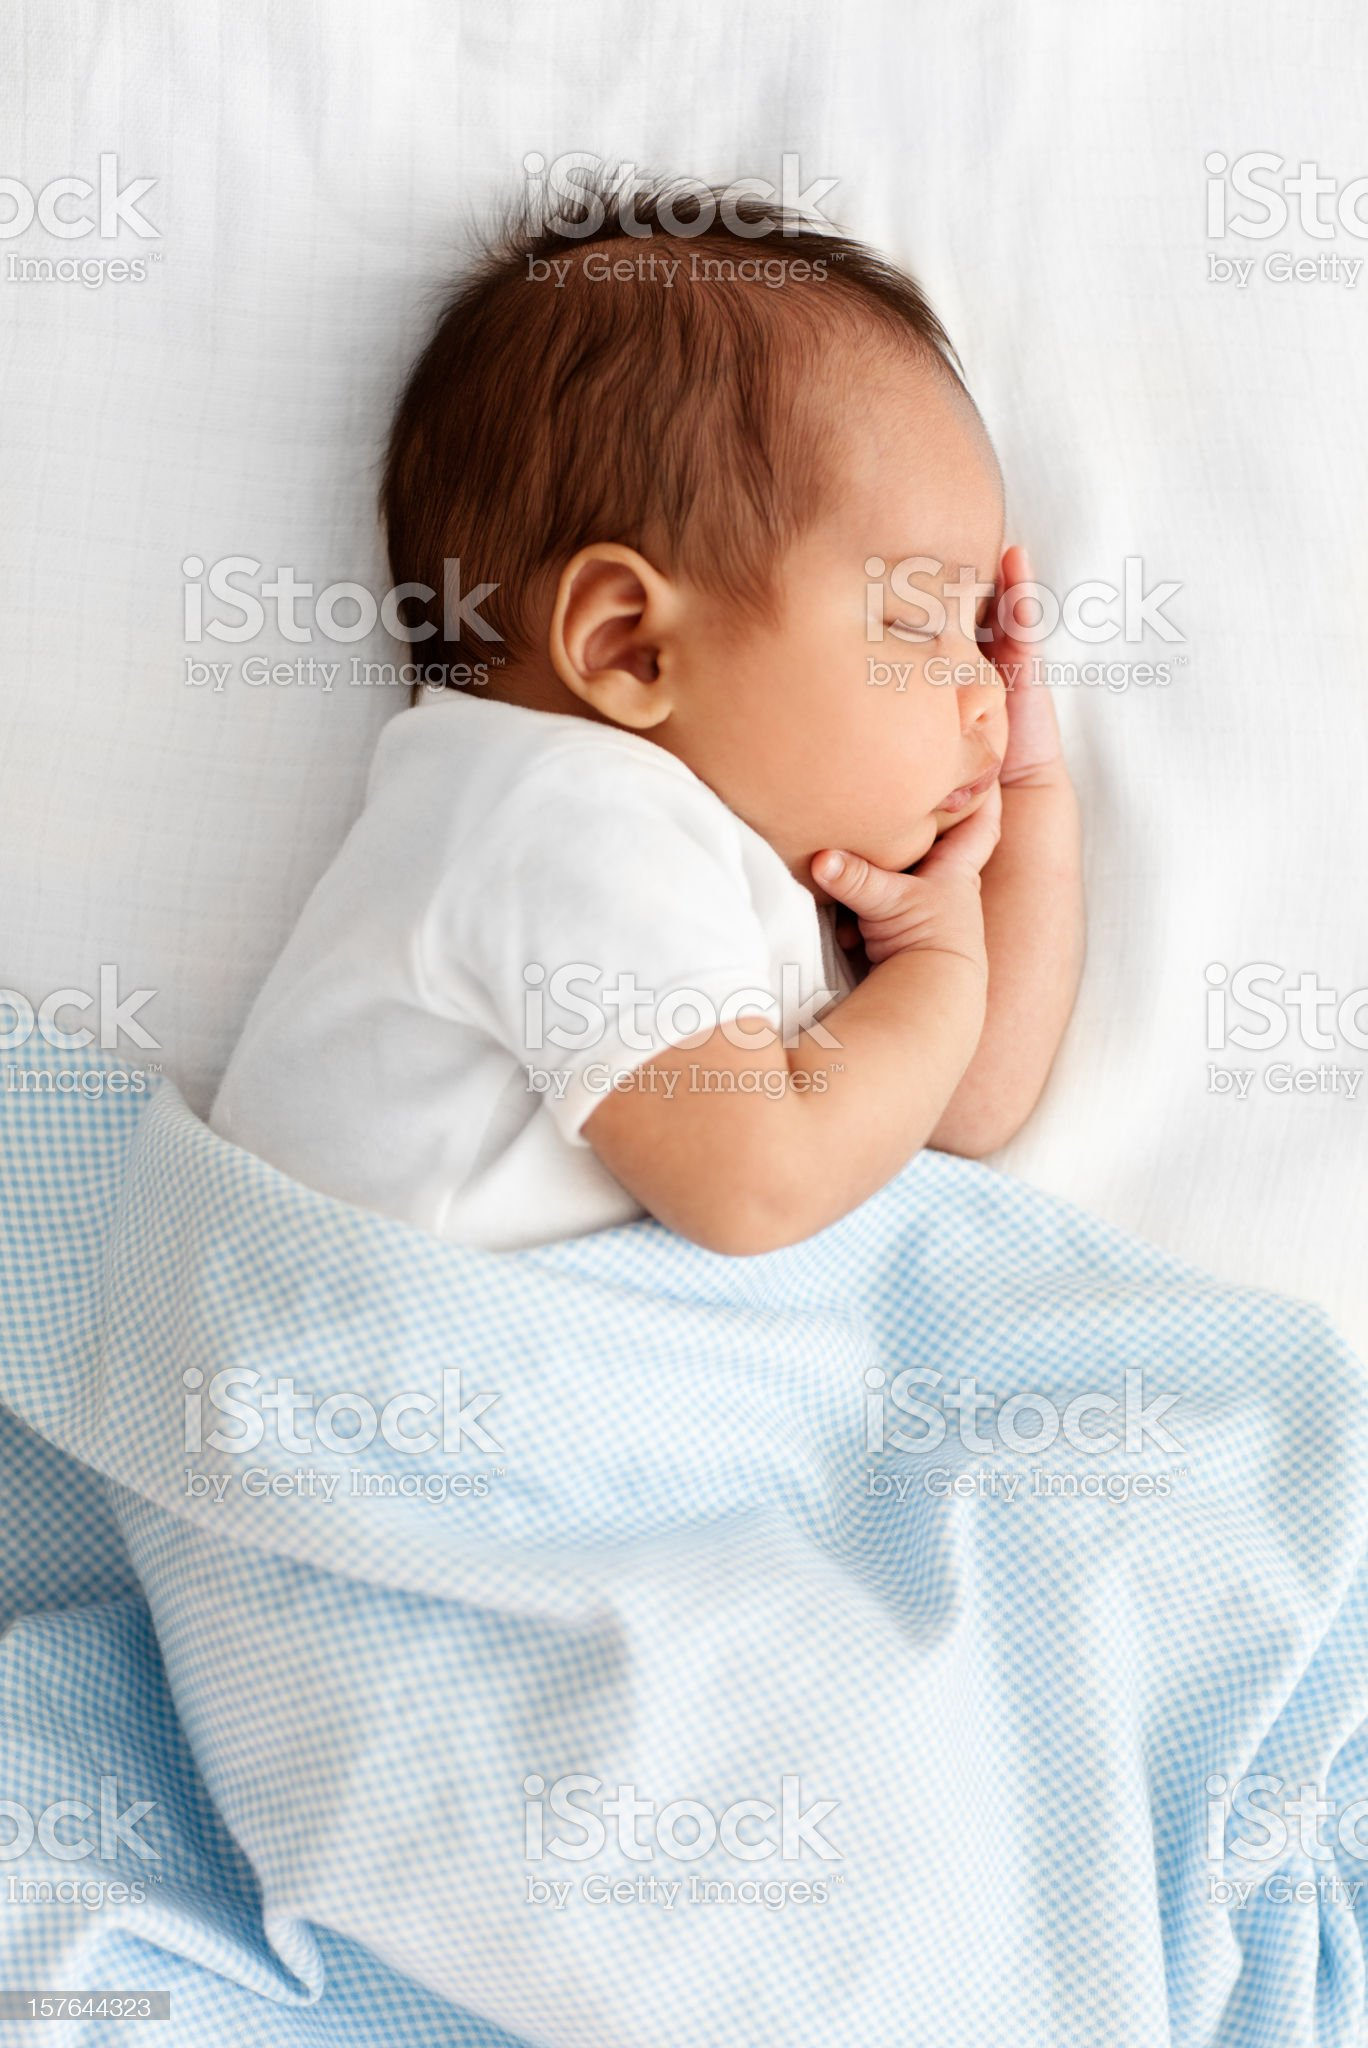 Sleeping Baby royalty-free stock photo